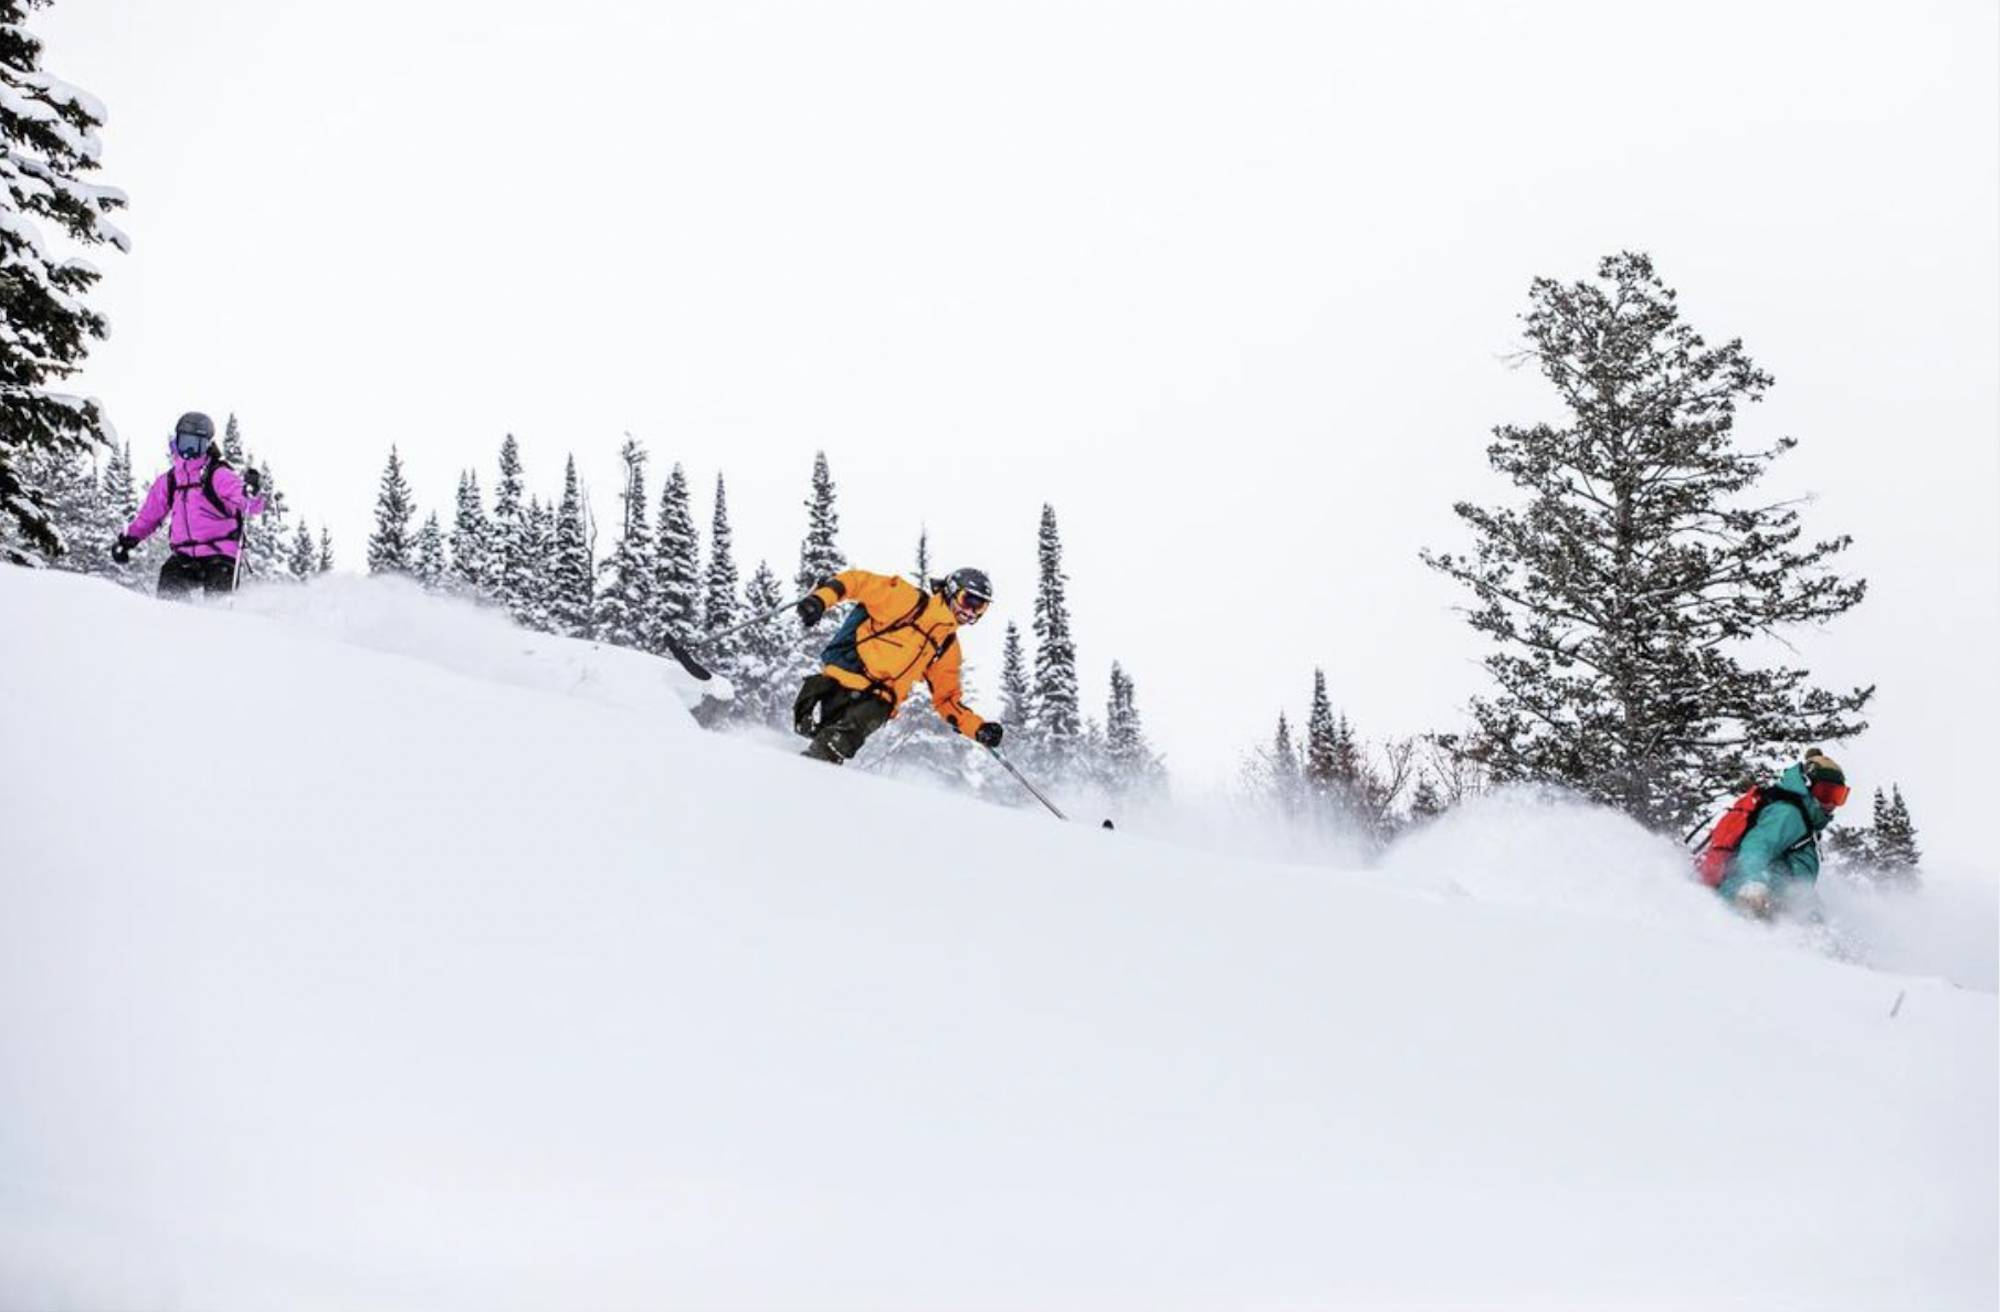 from left to right: ingrid backstrom, vasu sojitra, and emilé zynobia skiing in the PNW